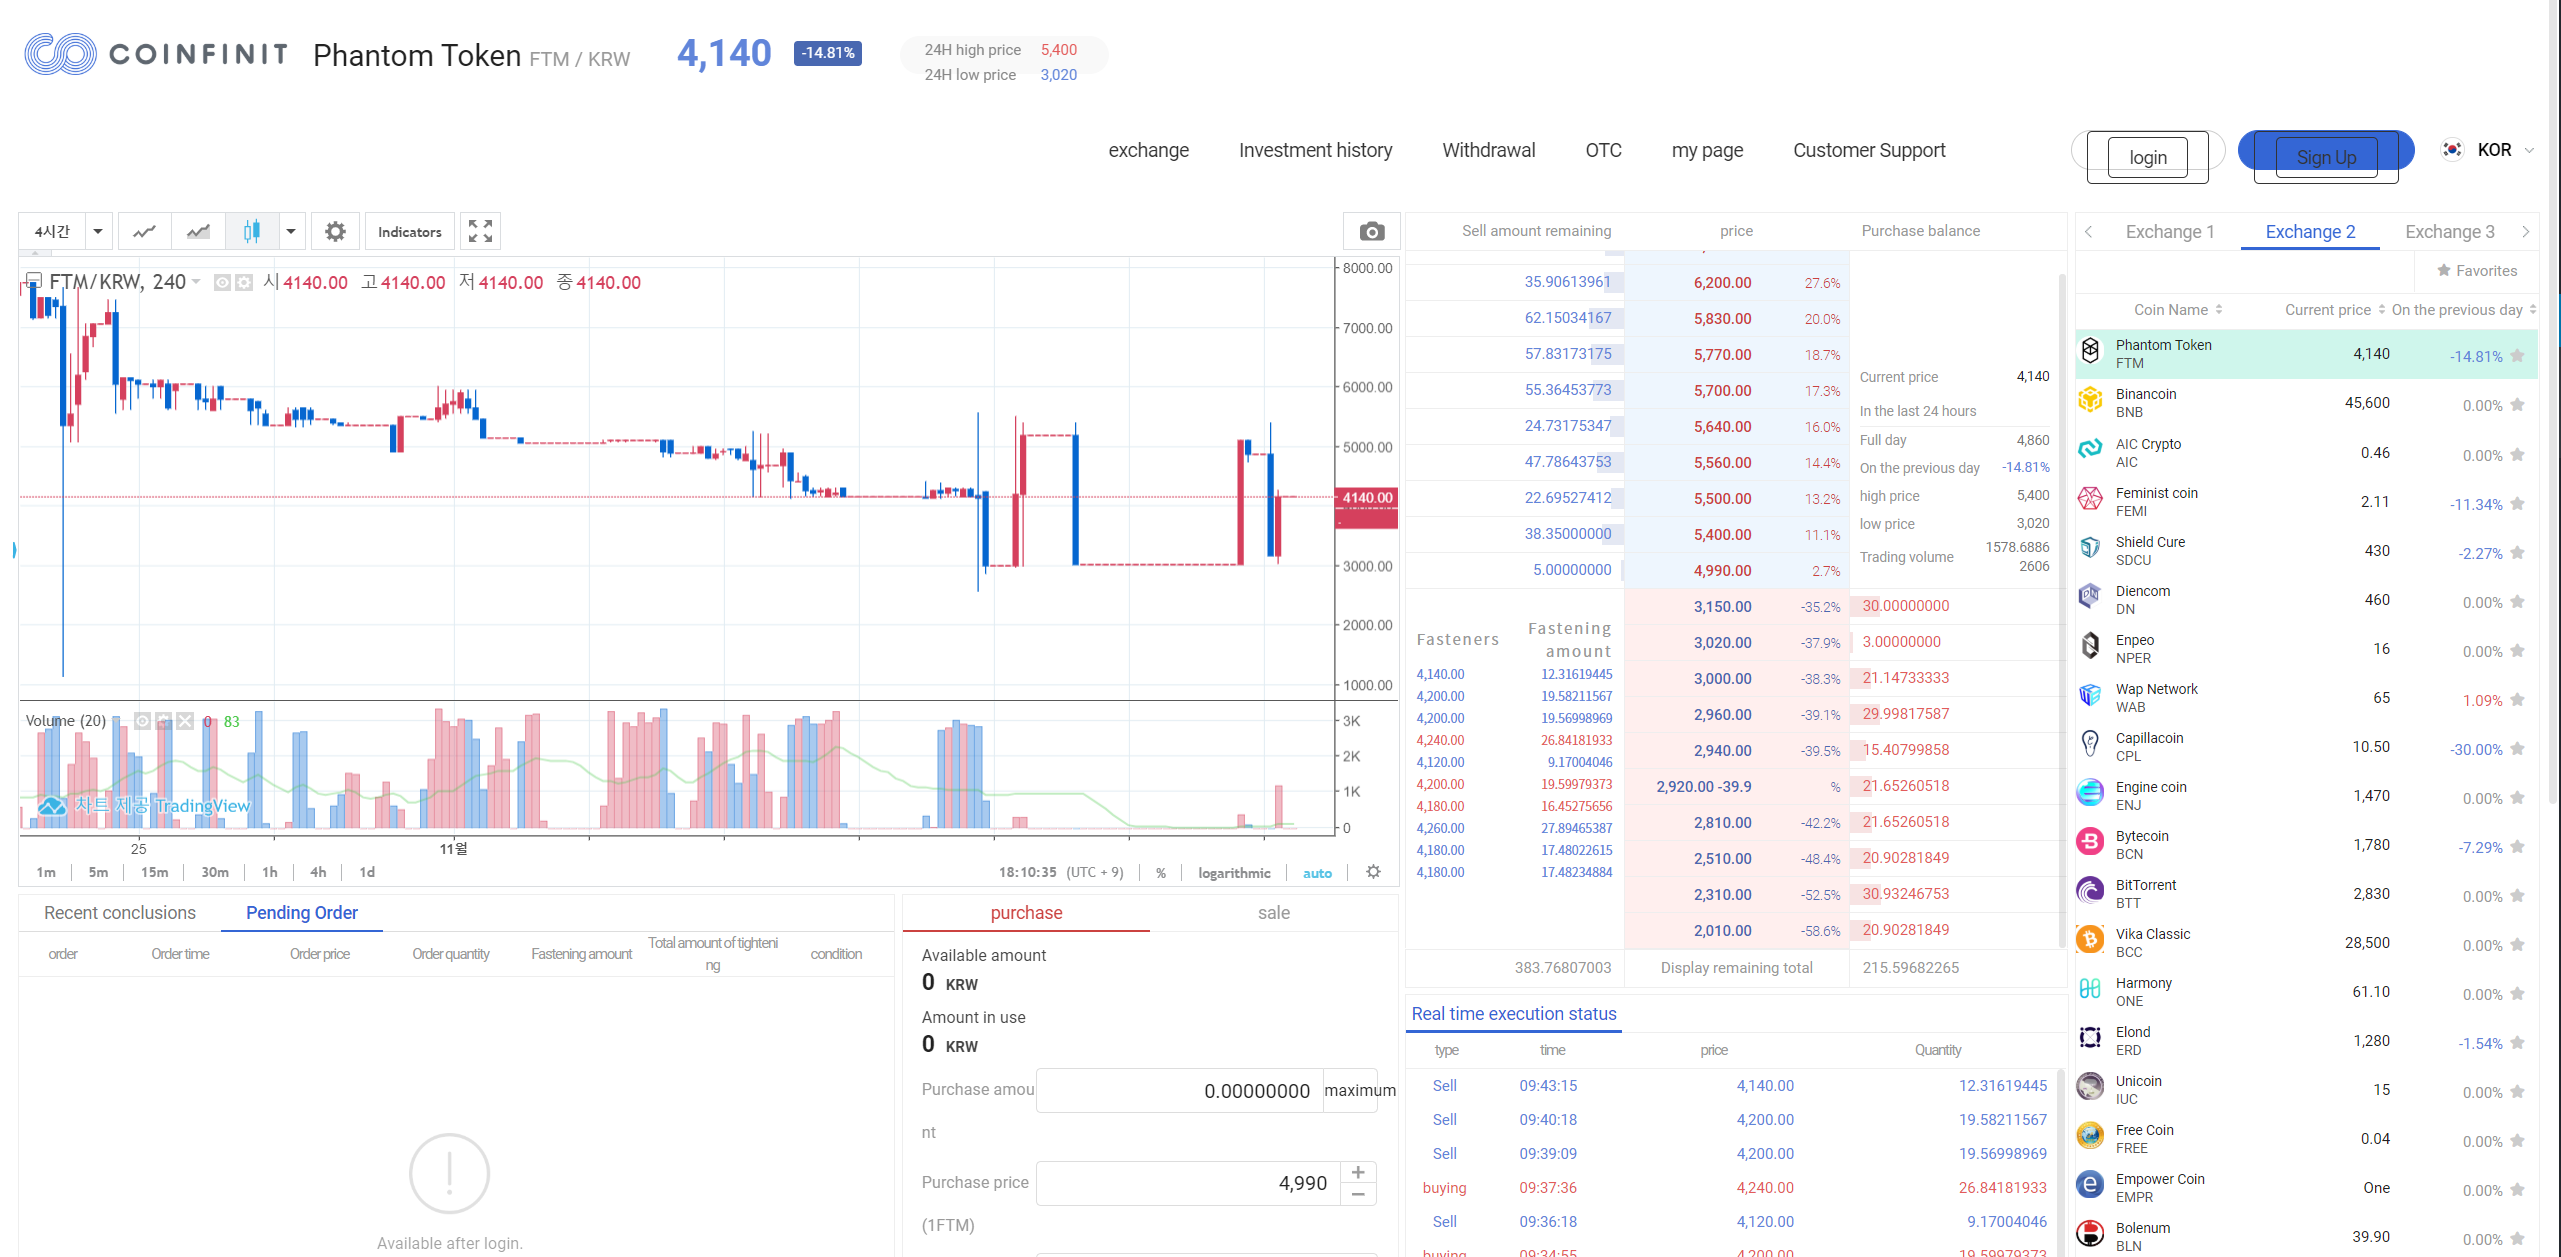 Coinfinit Trading View